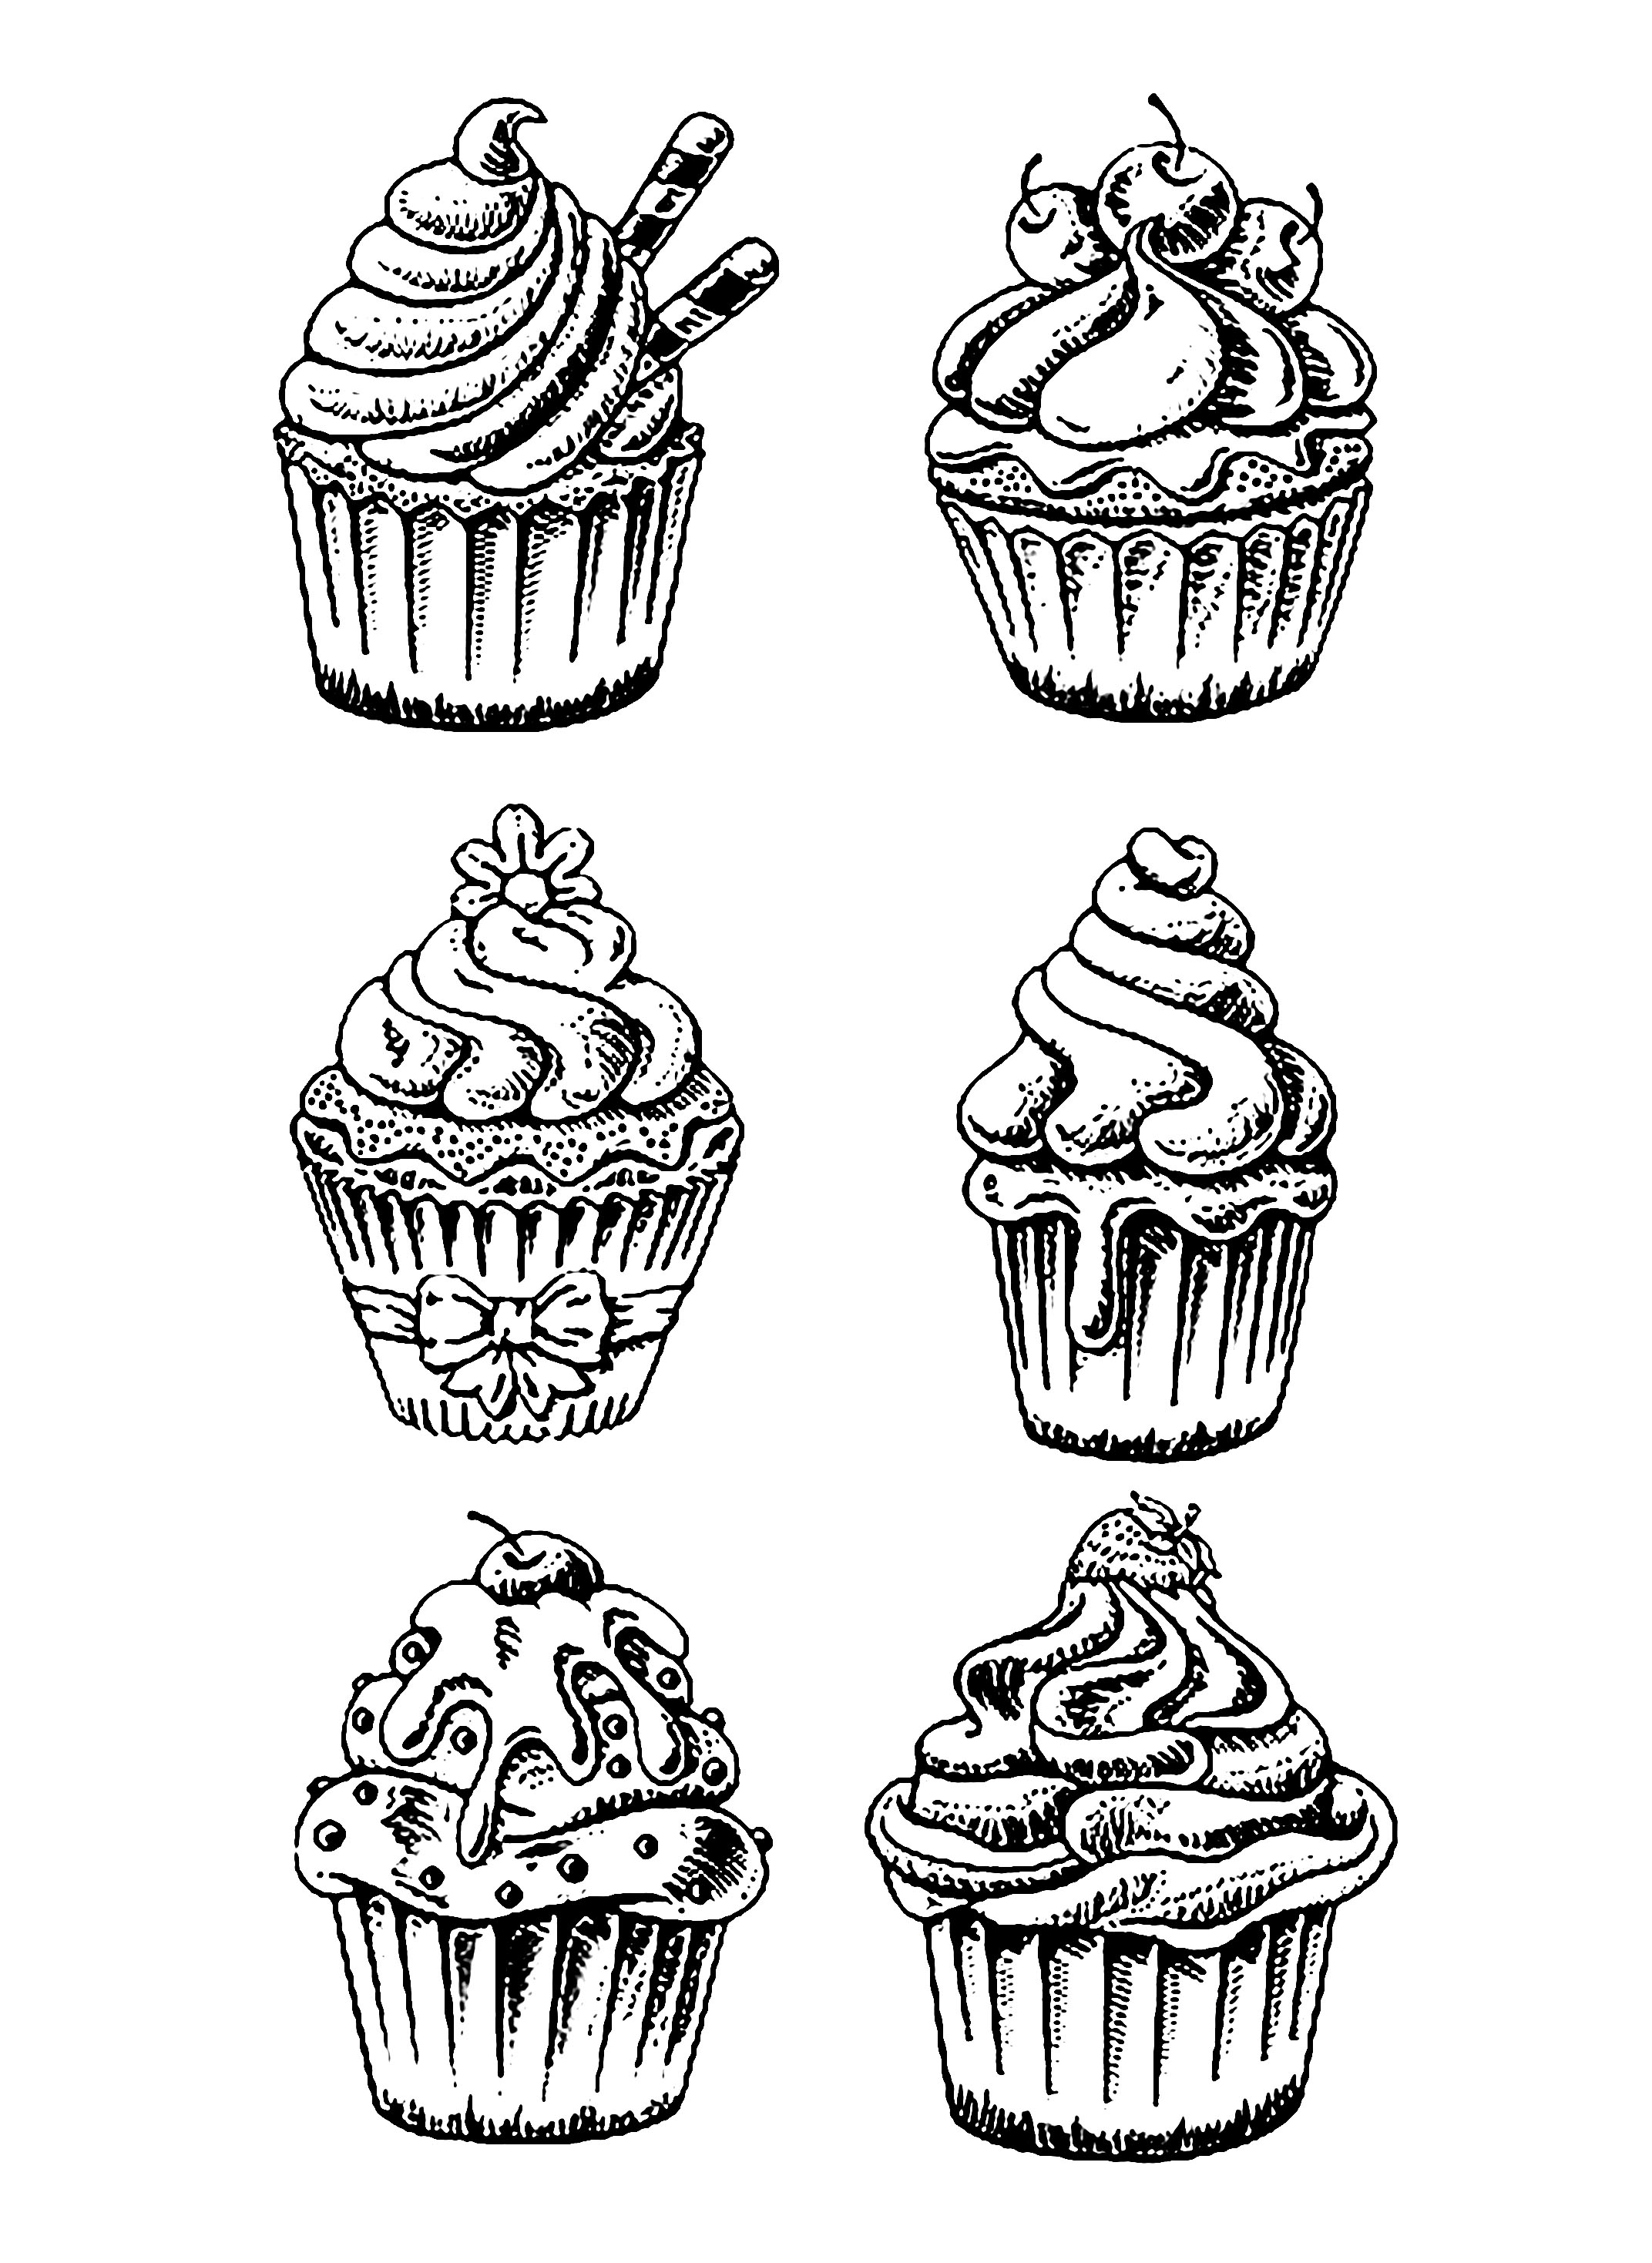 Do You Know The Muffin Man Page Coloring Pages